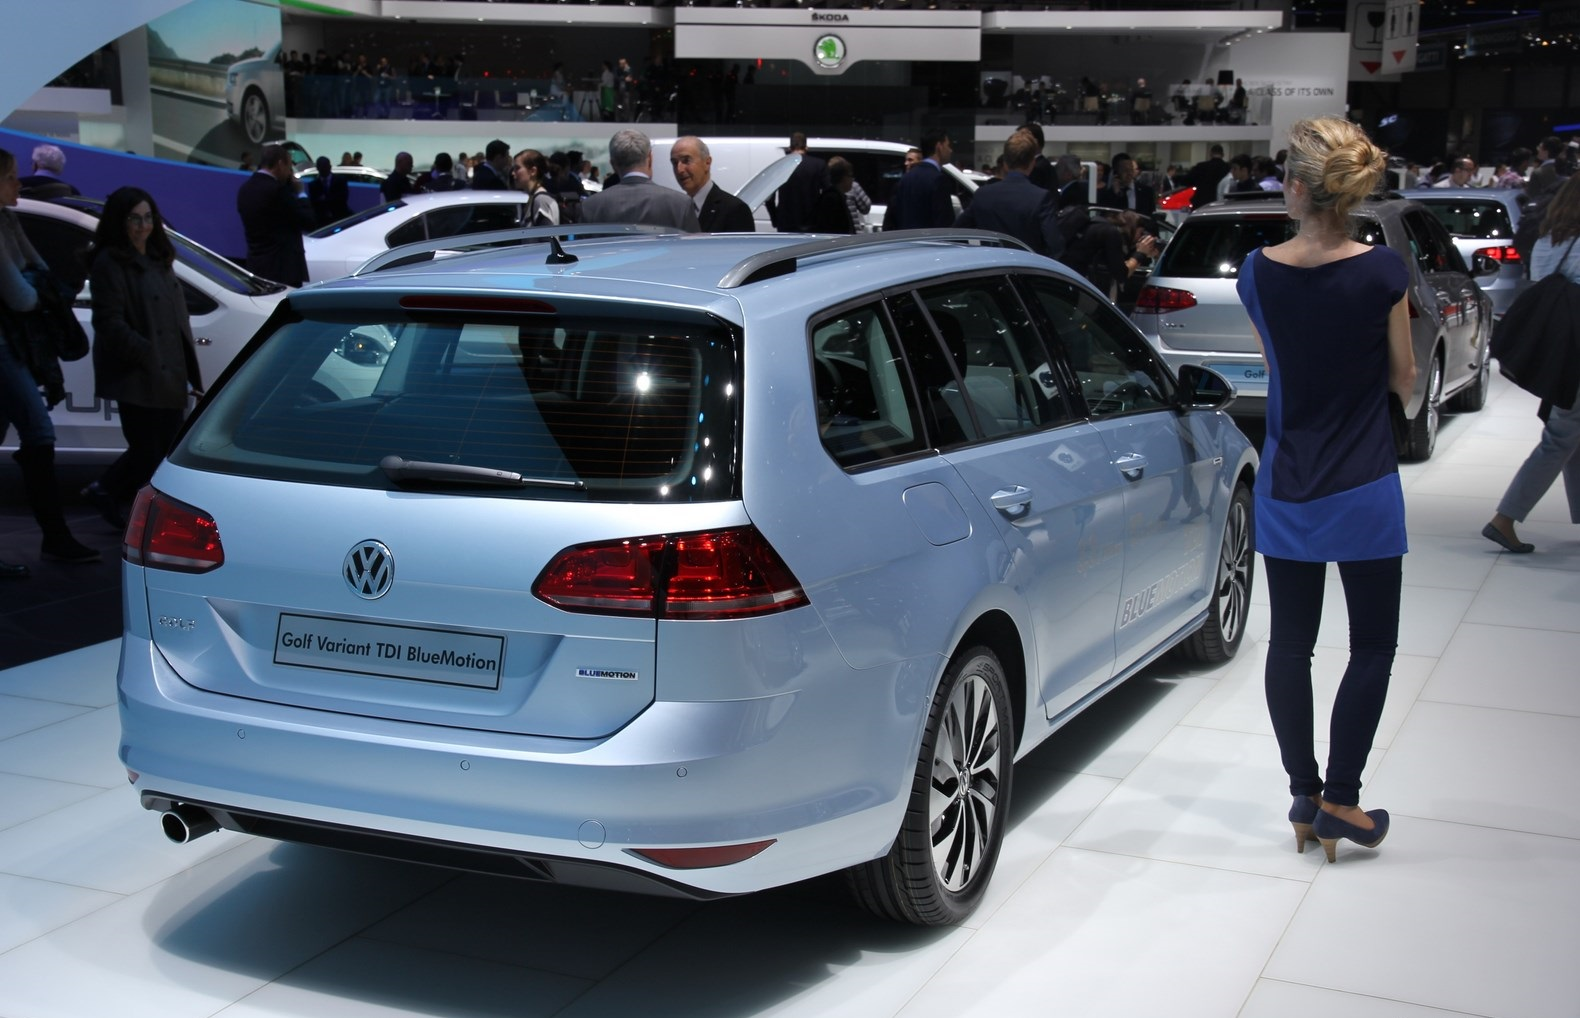 VW Golf Variant image #8